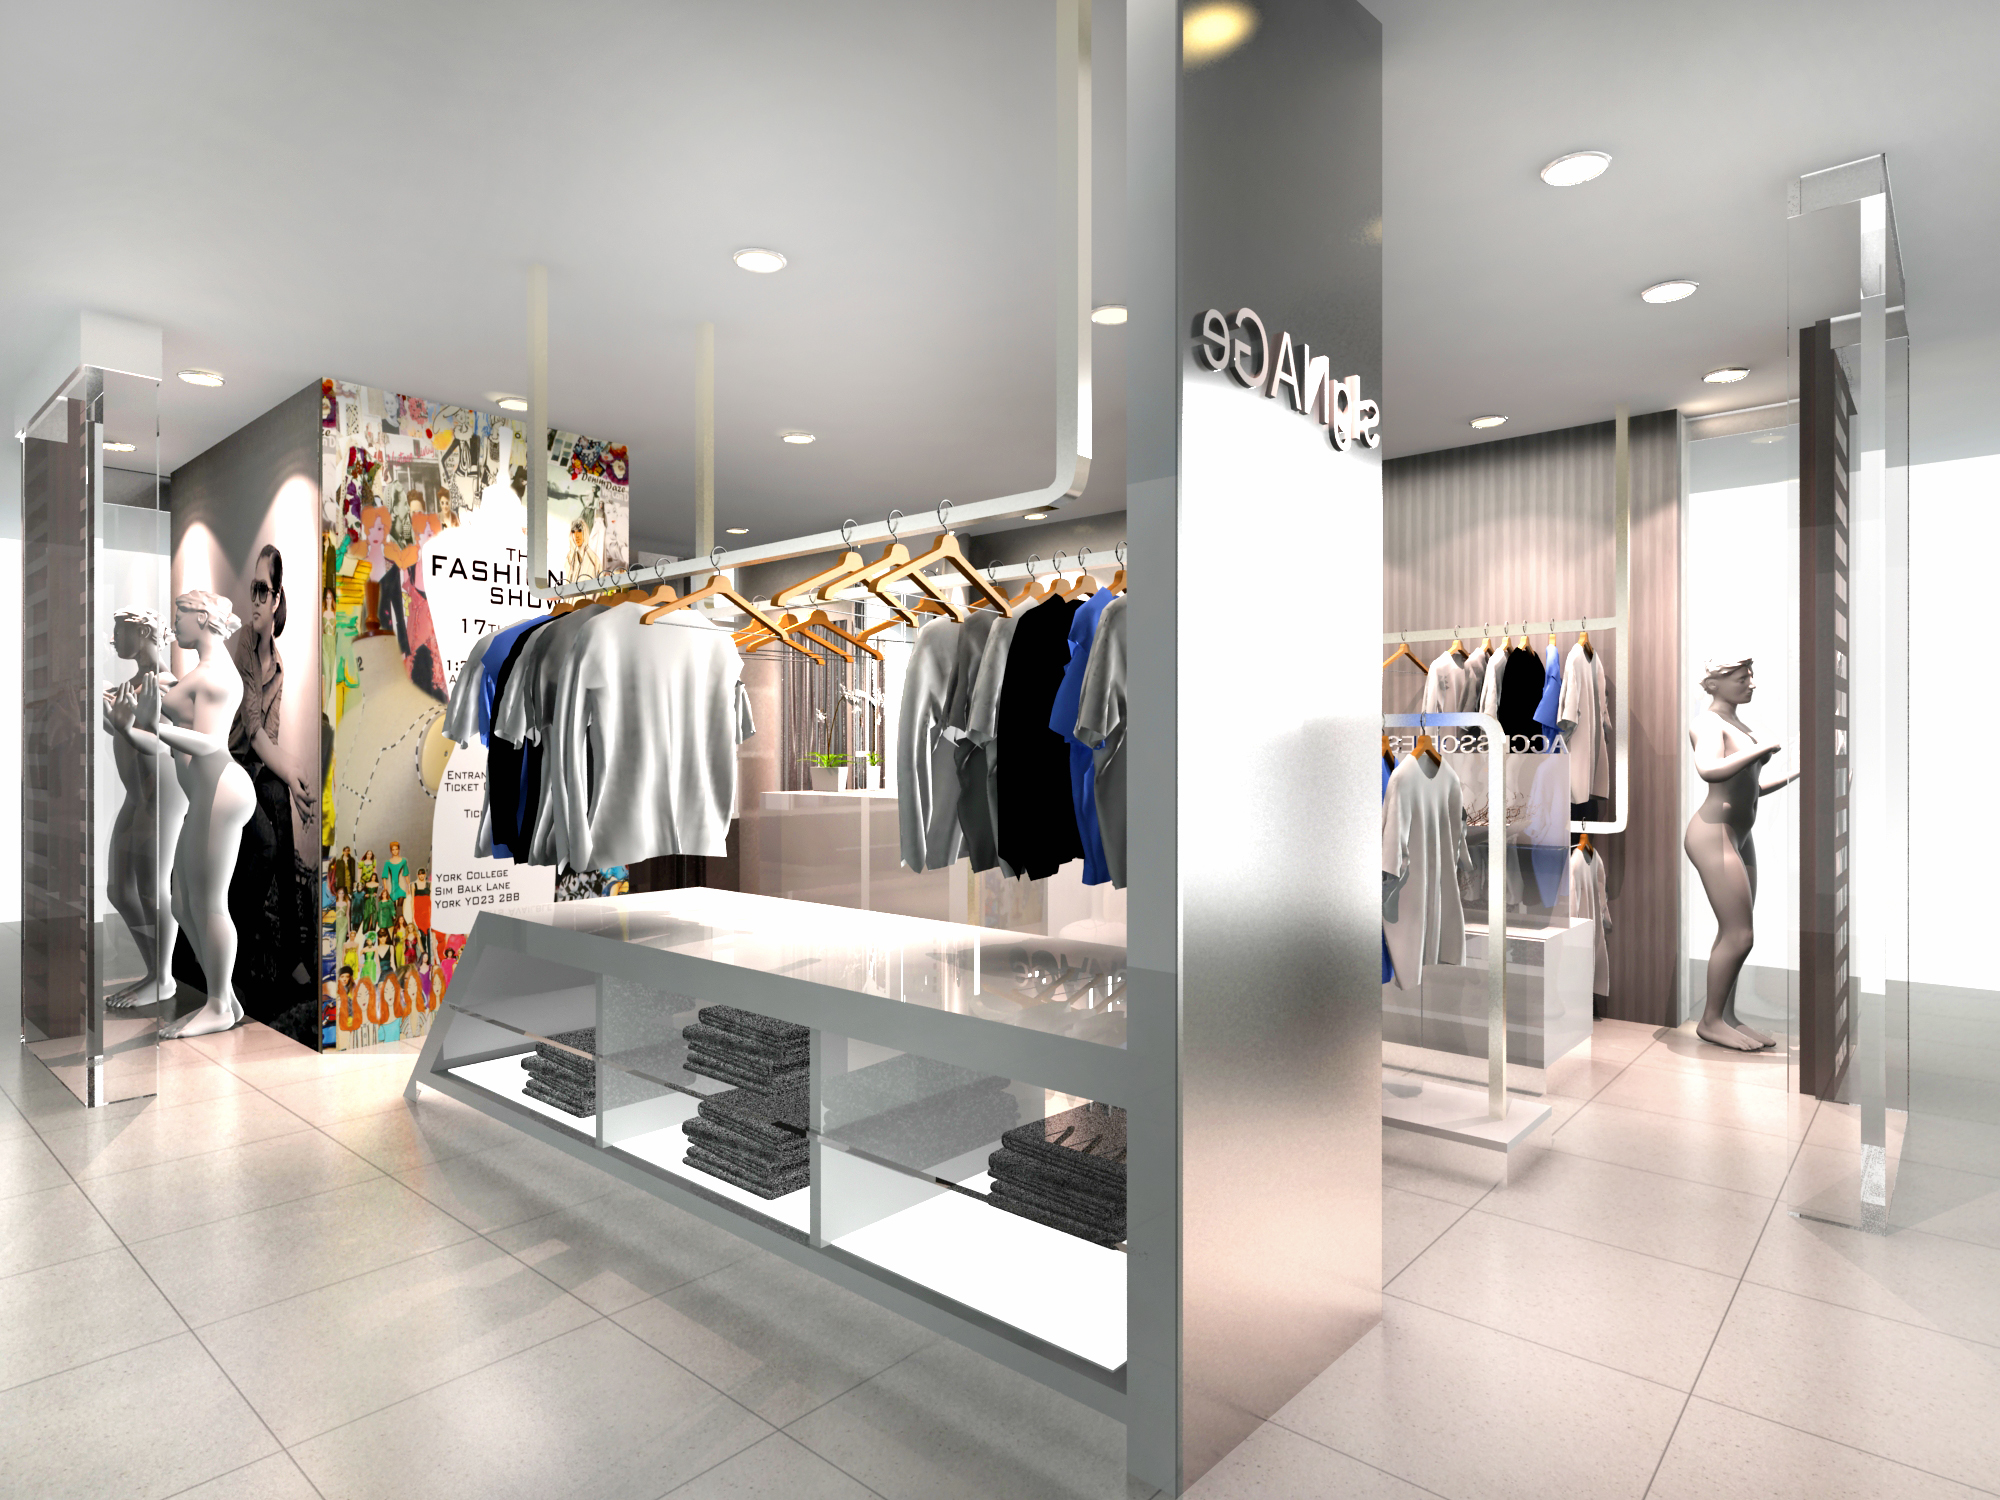 3-design-an-attractive-retail-store.jpg